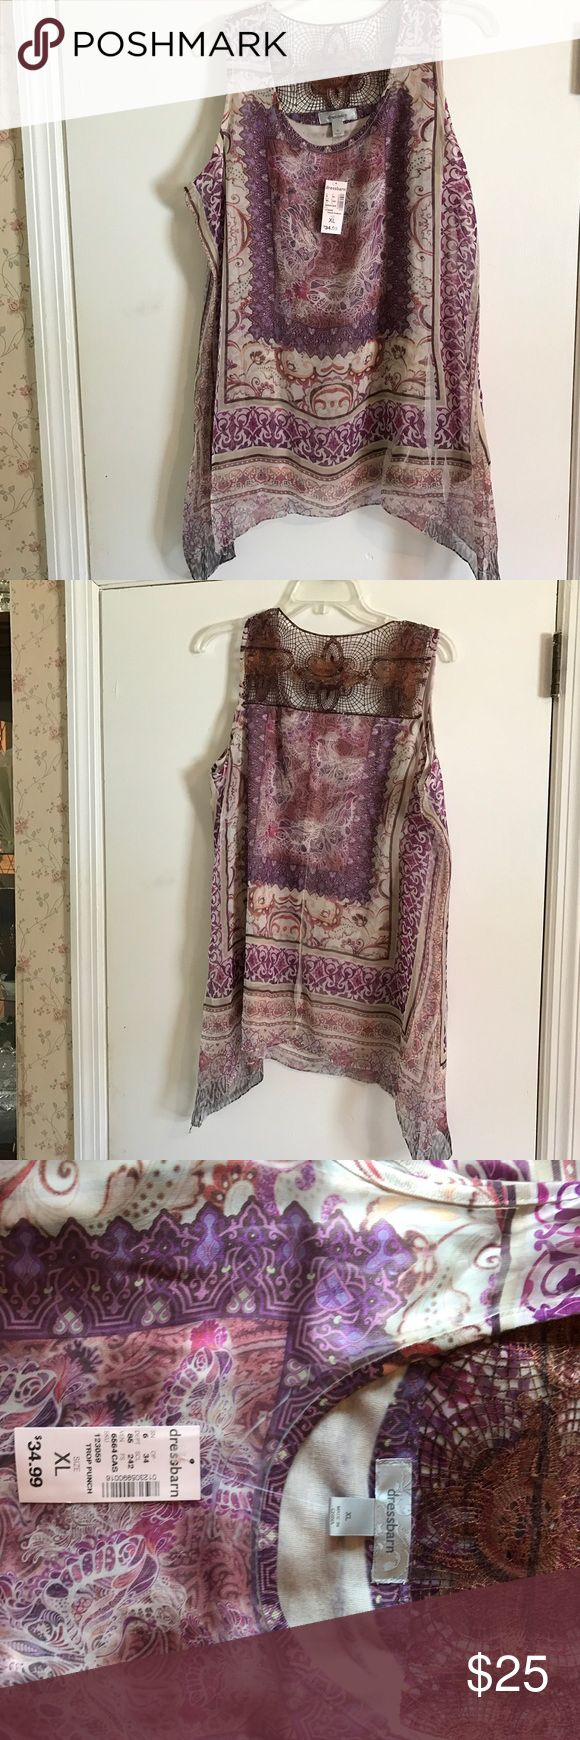 NWT. Multicolored summer blouse Beautiful flowing blouse with lace accent on back. Dress Barn Tops Blouses